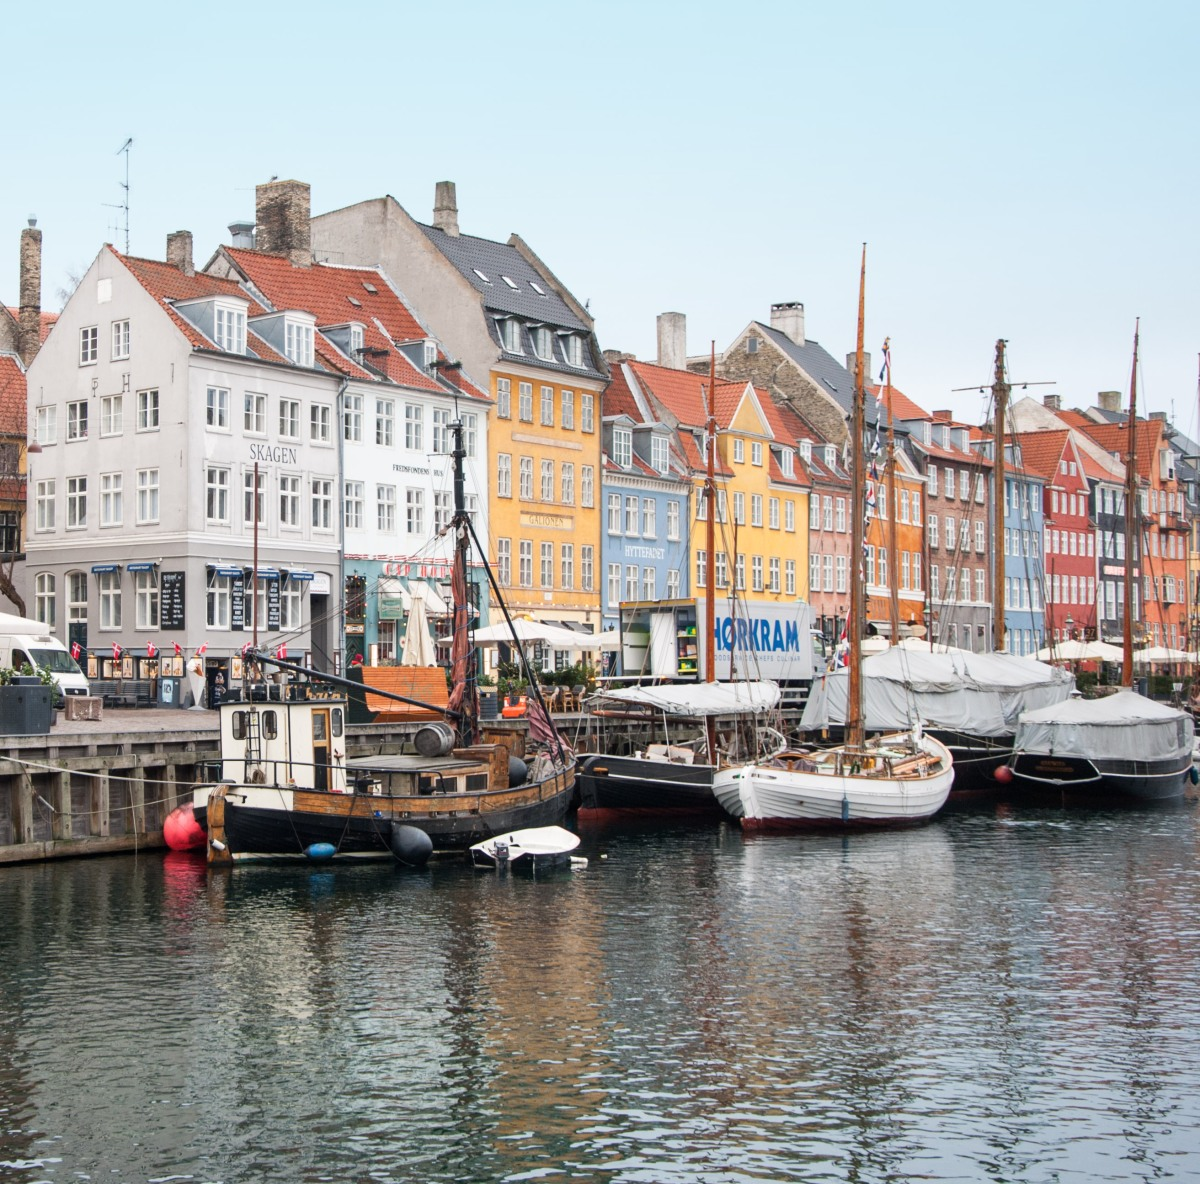 Beyond Our Horizons Weekly Travel Roundup: Wk 2 feat. Denmark